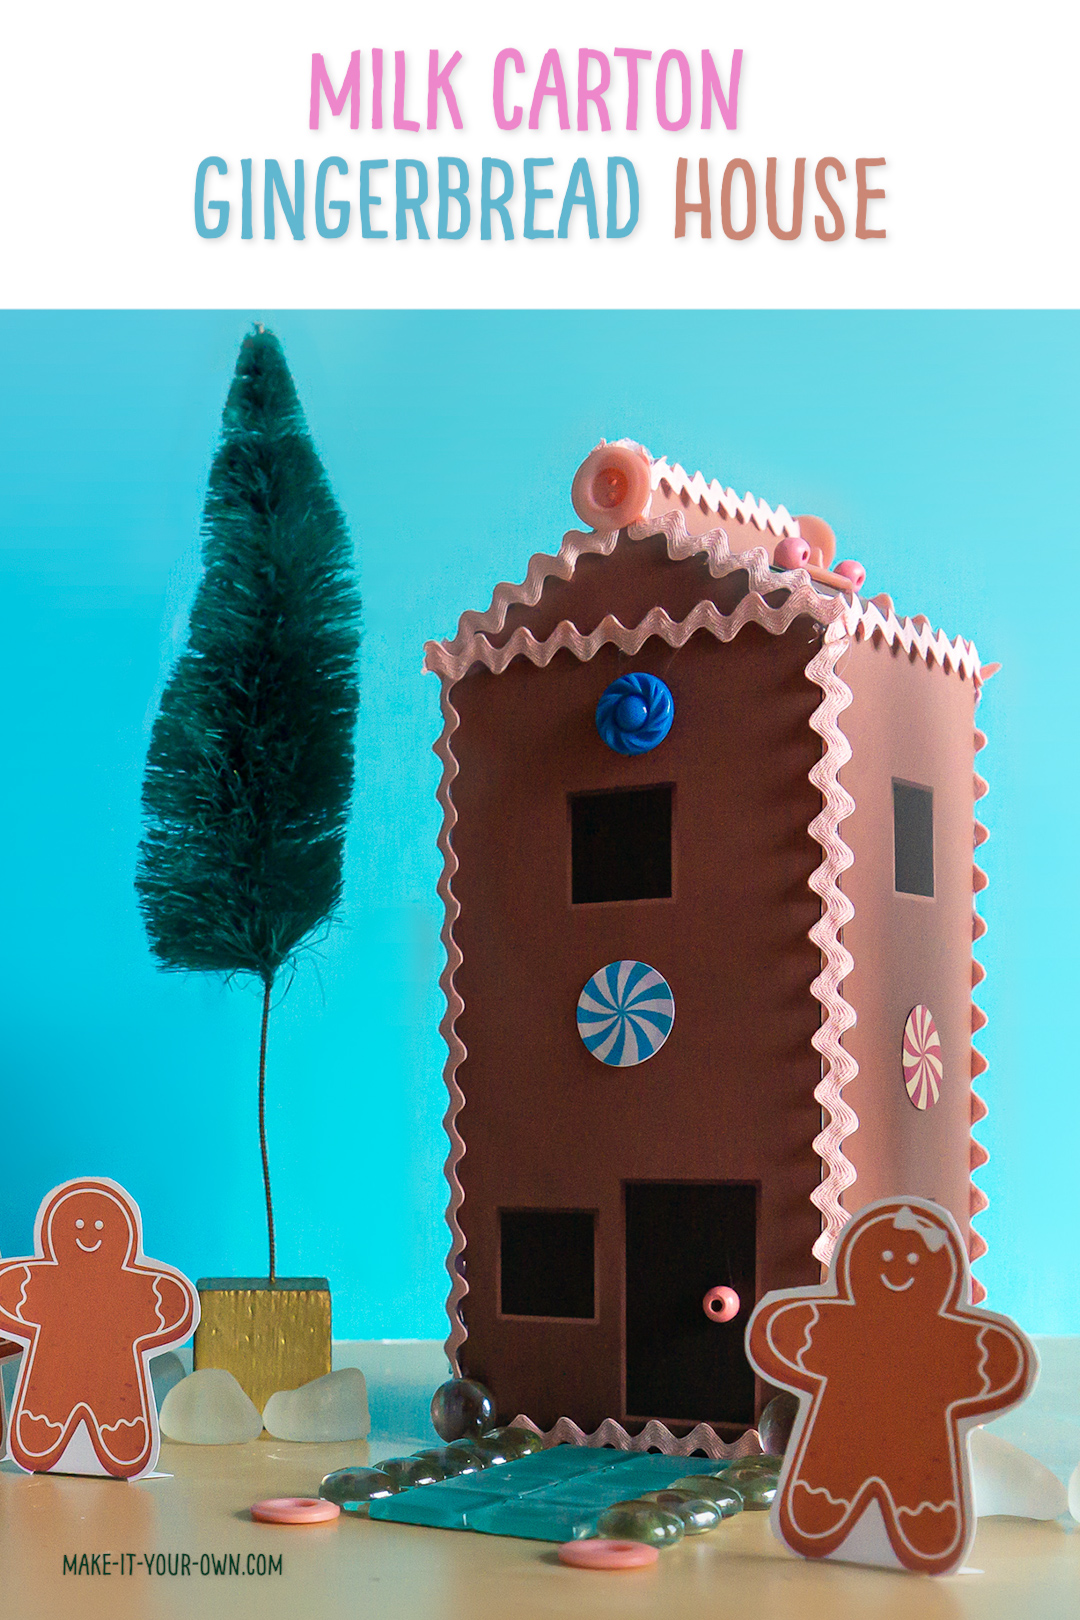 Use these printables to turn a juice or milk carton into a 3D gingerbread house!  Complete with printable gingerbread people, trees and paper candies to decorate!  This makes a great Christmas small world play scene for kids using recyclables!